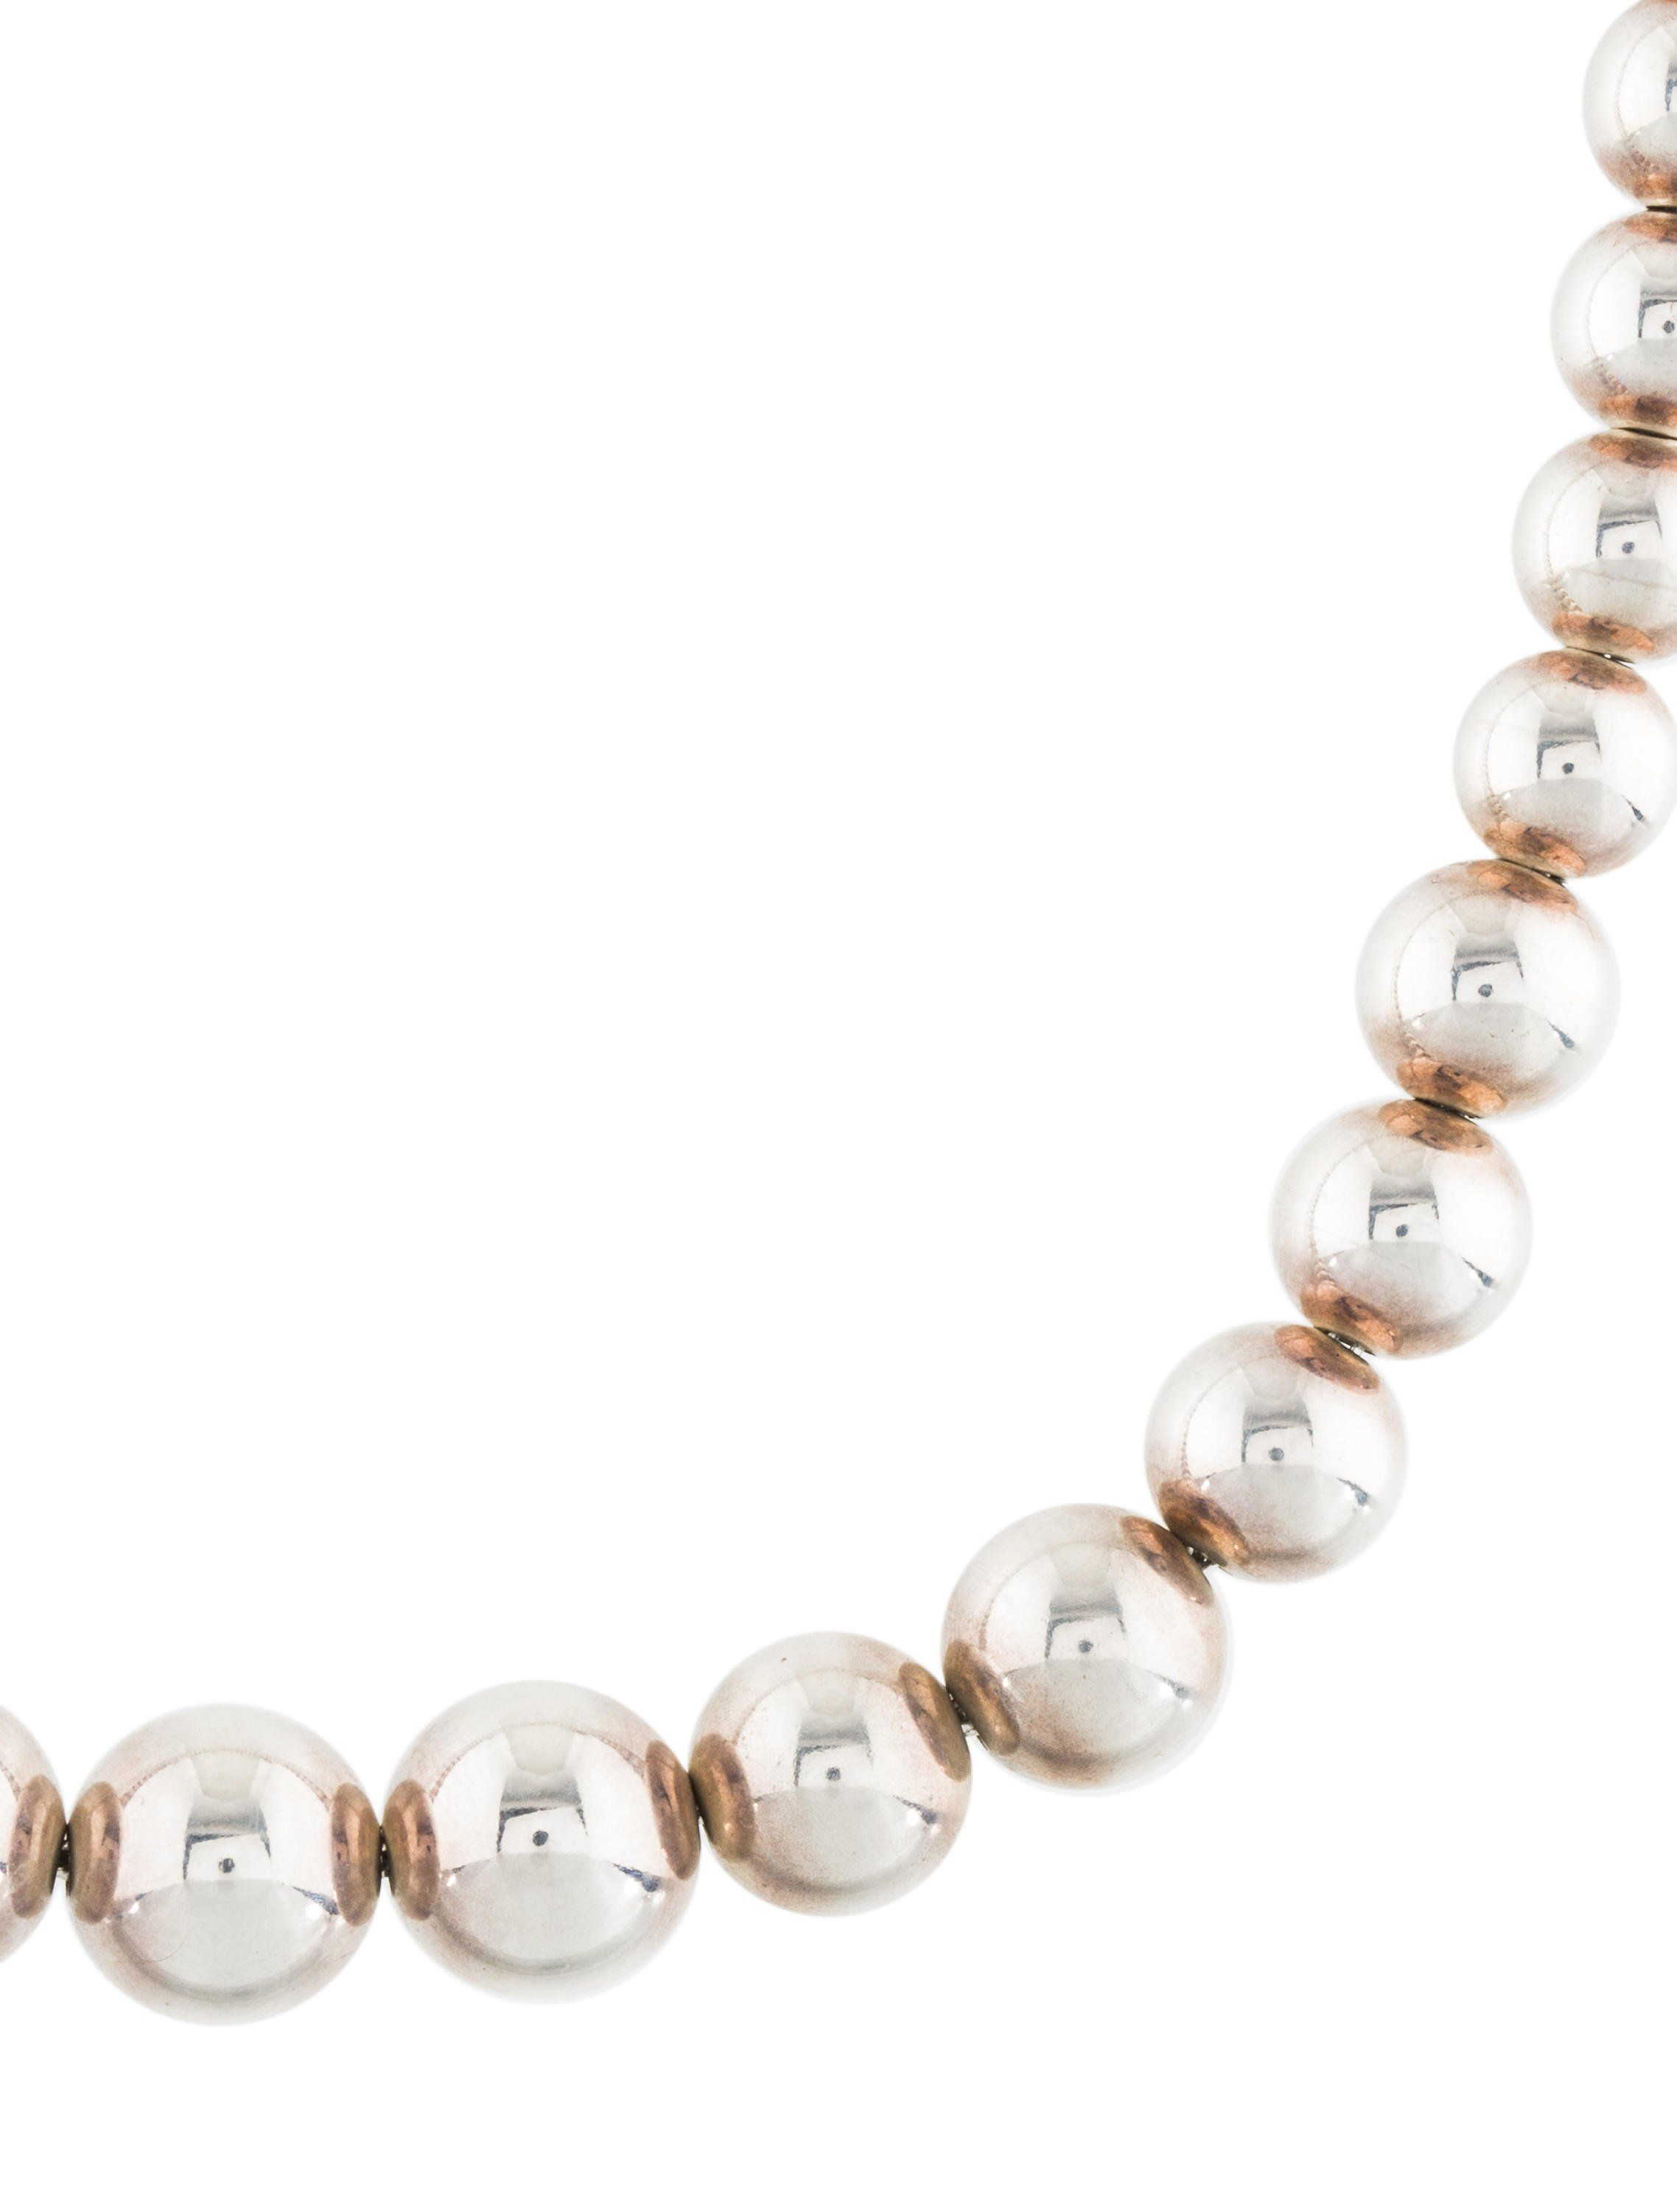 29e9bd443 Sterling silver Tiffany & Co. HardWear Graduated Ball necklace featuring  high polish finish with lobster clasp.tiffany-co#HardWear#Graduated#Ball